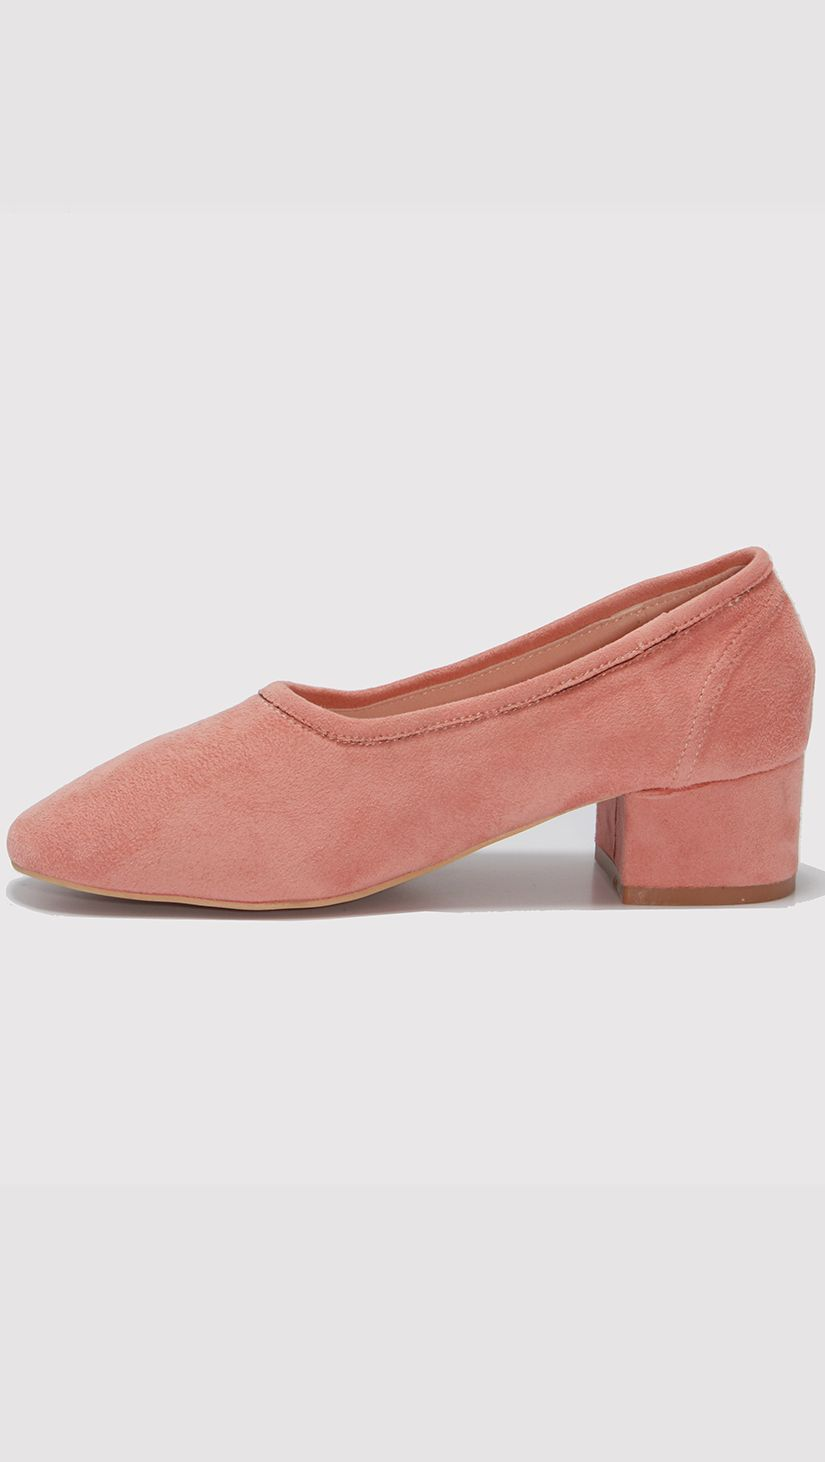 http://theloeil.com/collections/shoes/products/blush-socks-flat-heels